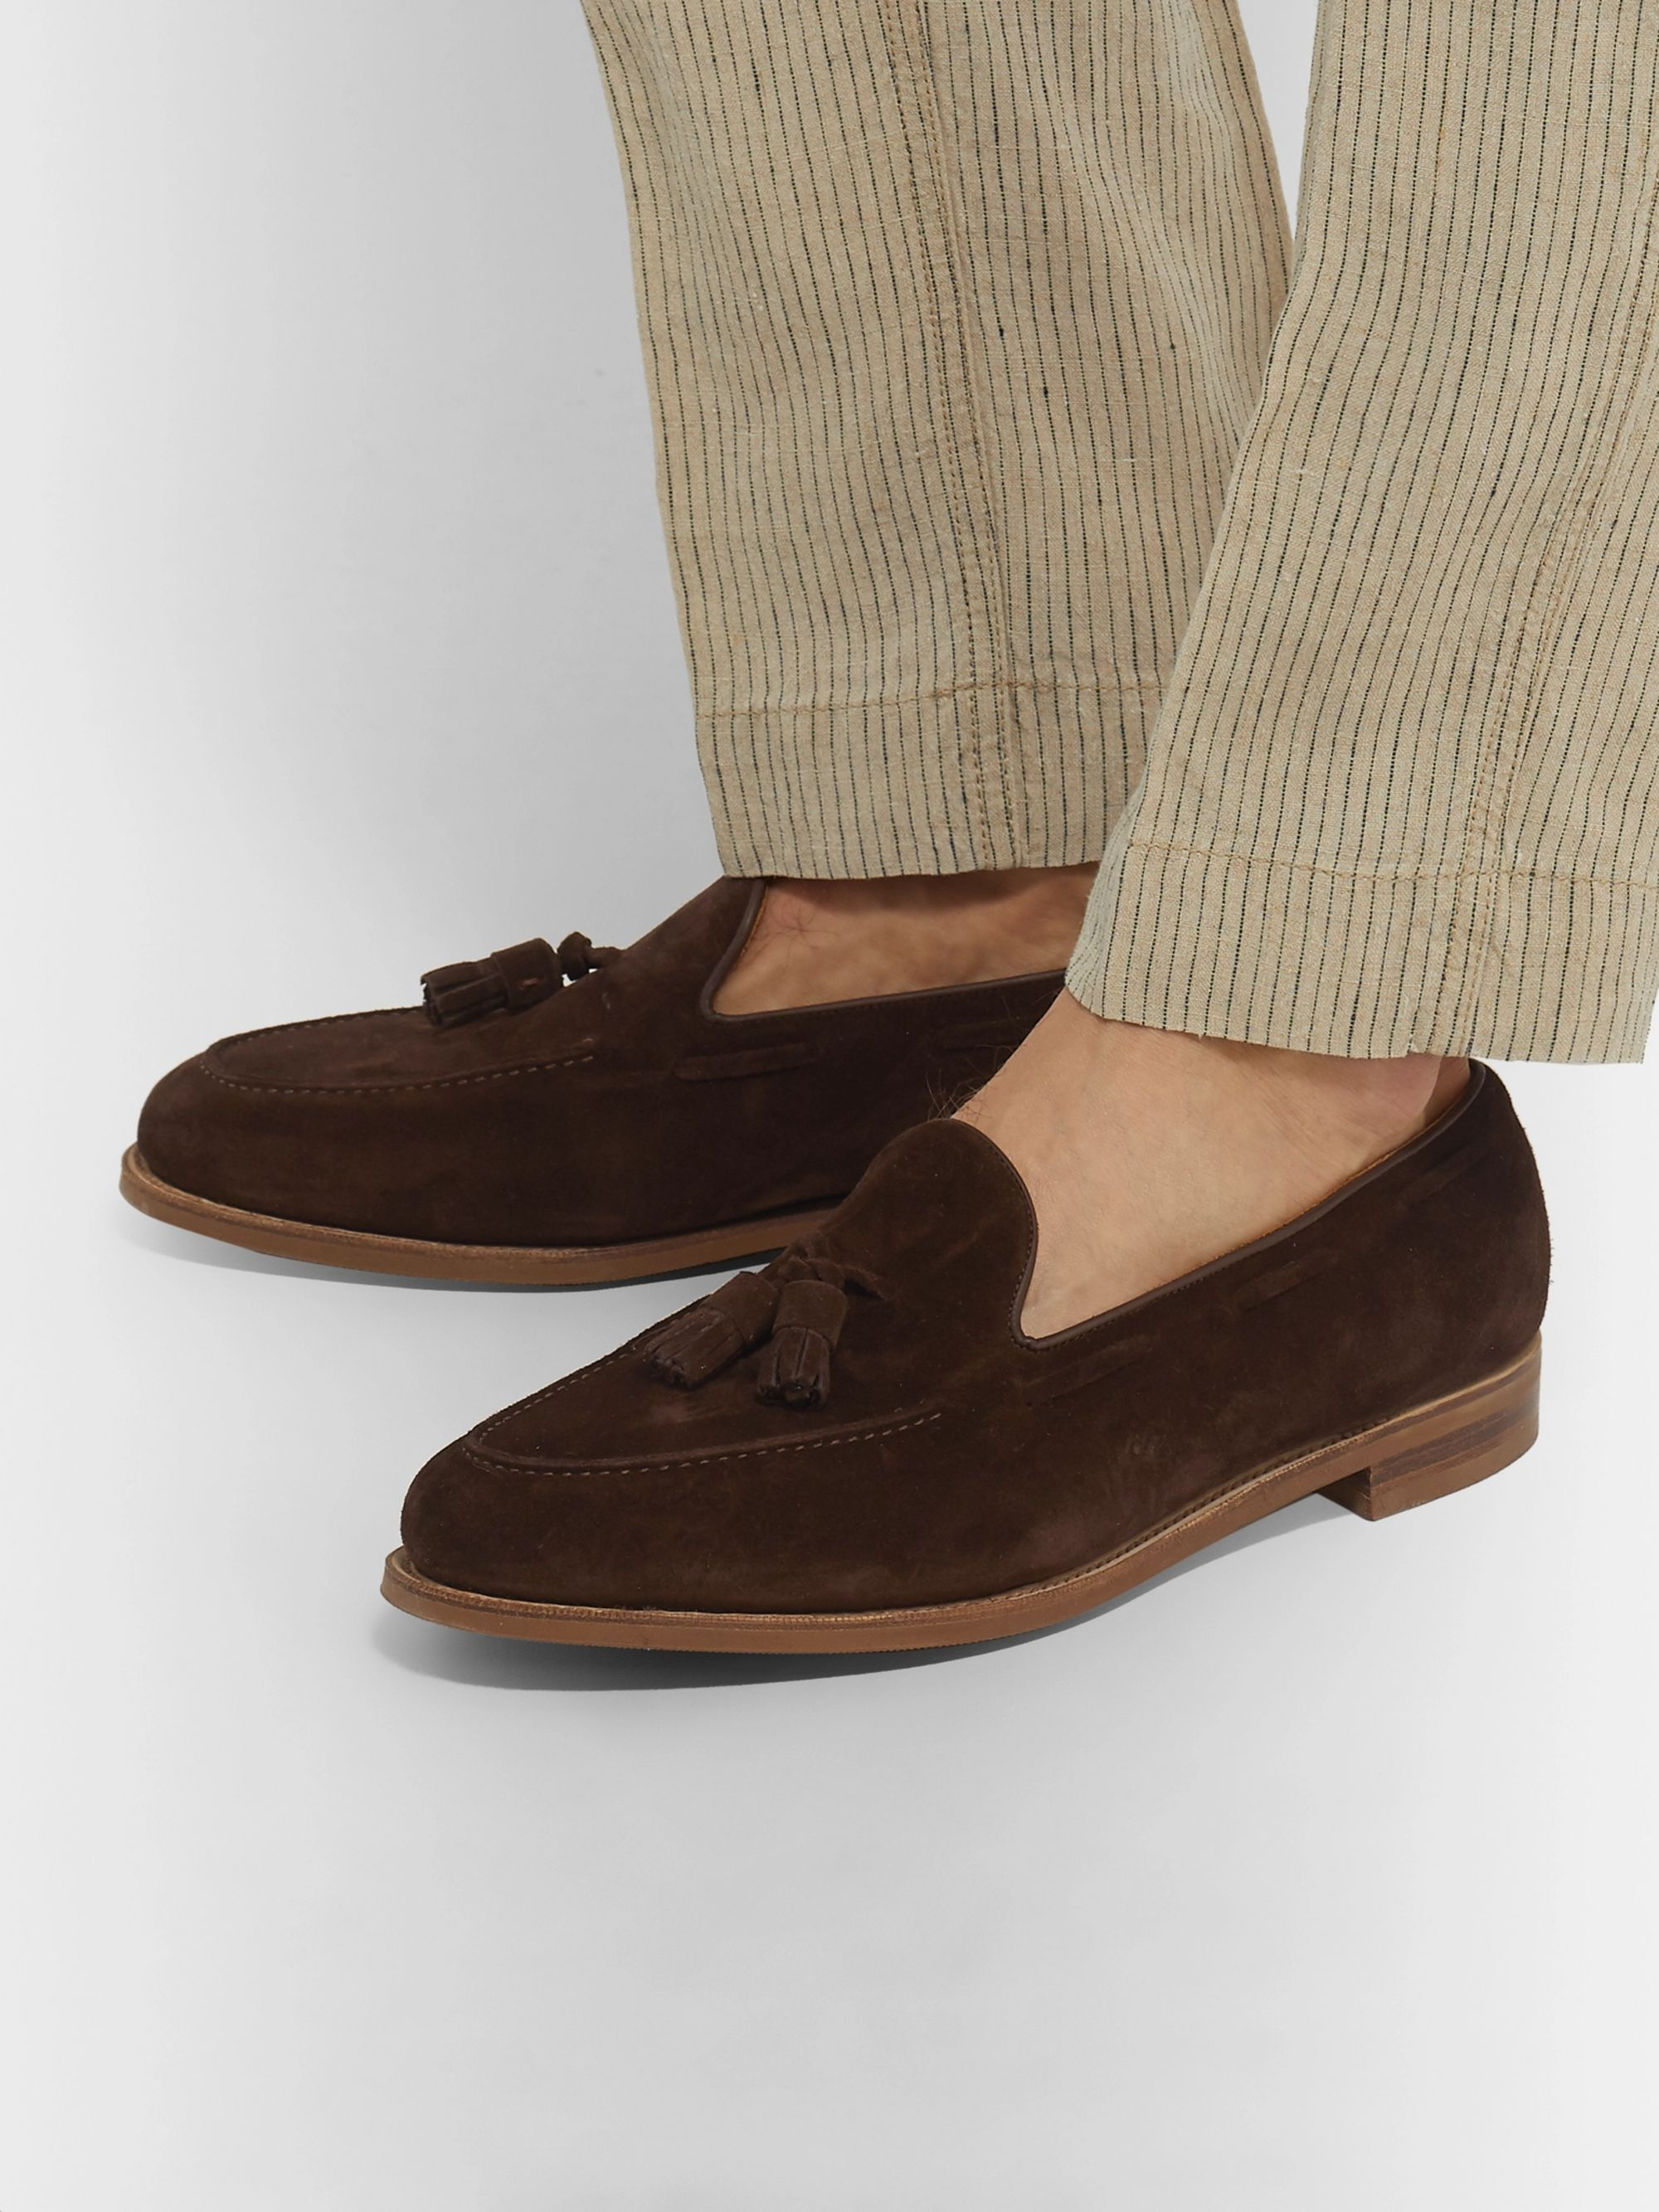 Edward Green Hampstead Leather-Trimmed Suede Tasselled Loafers